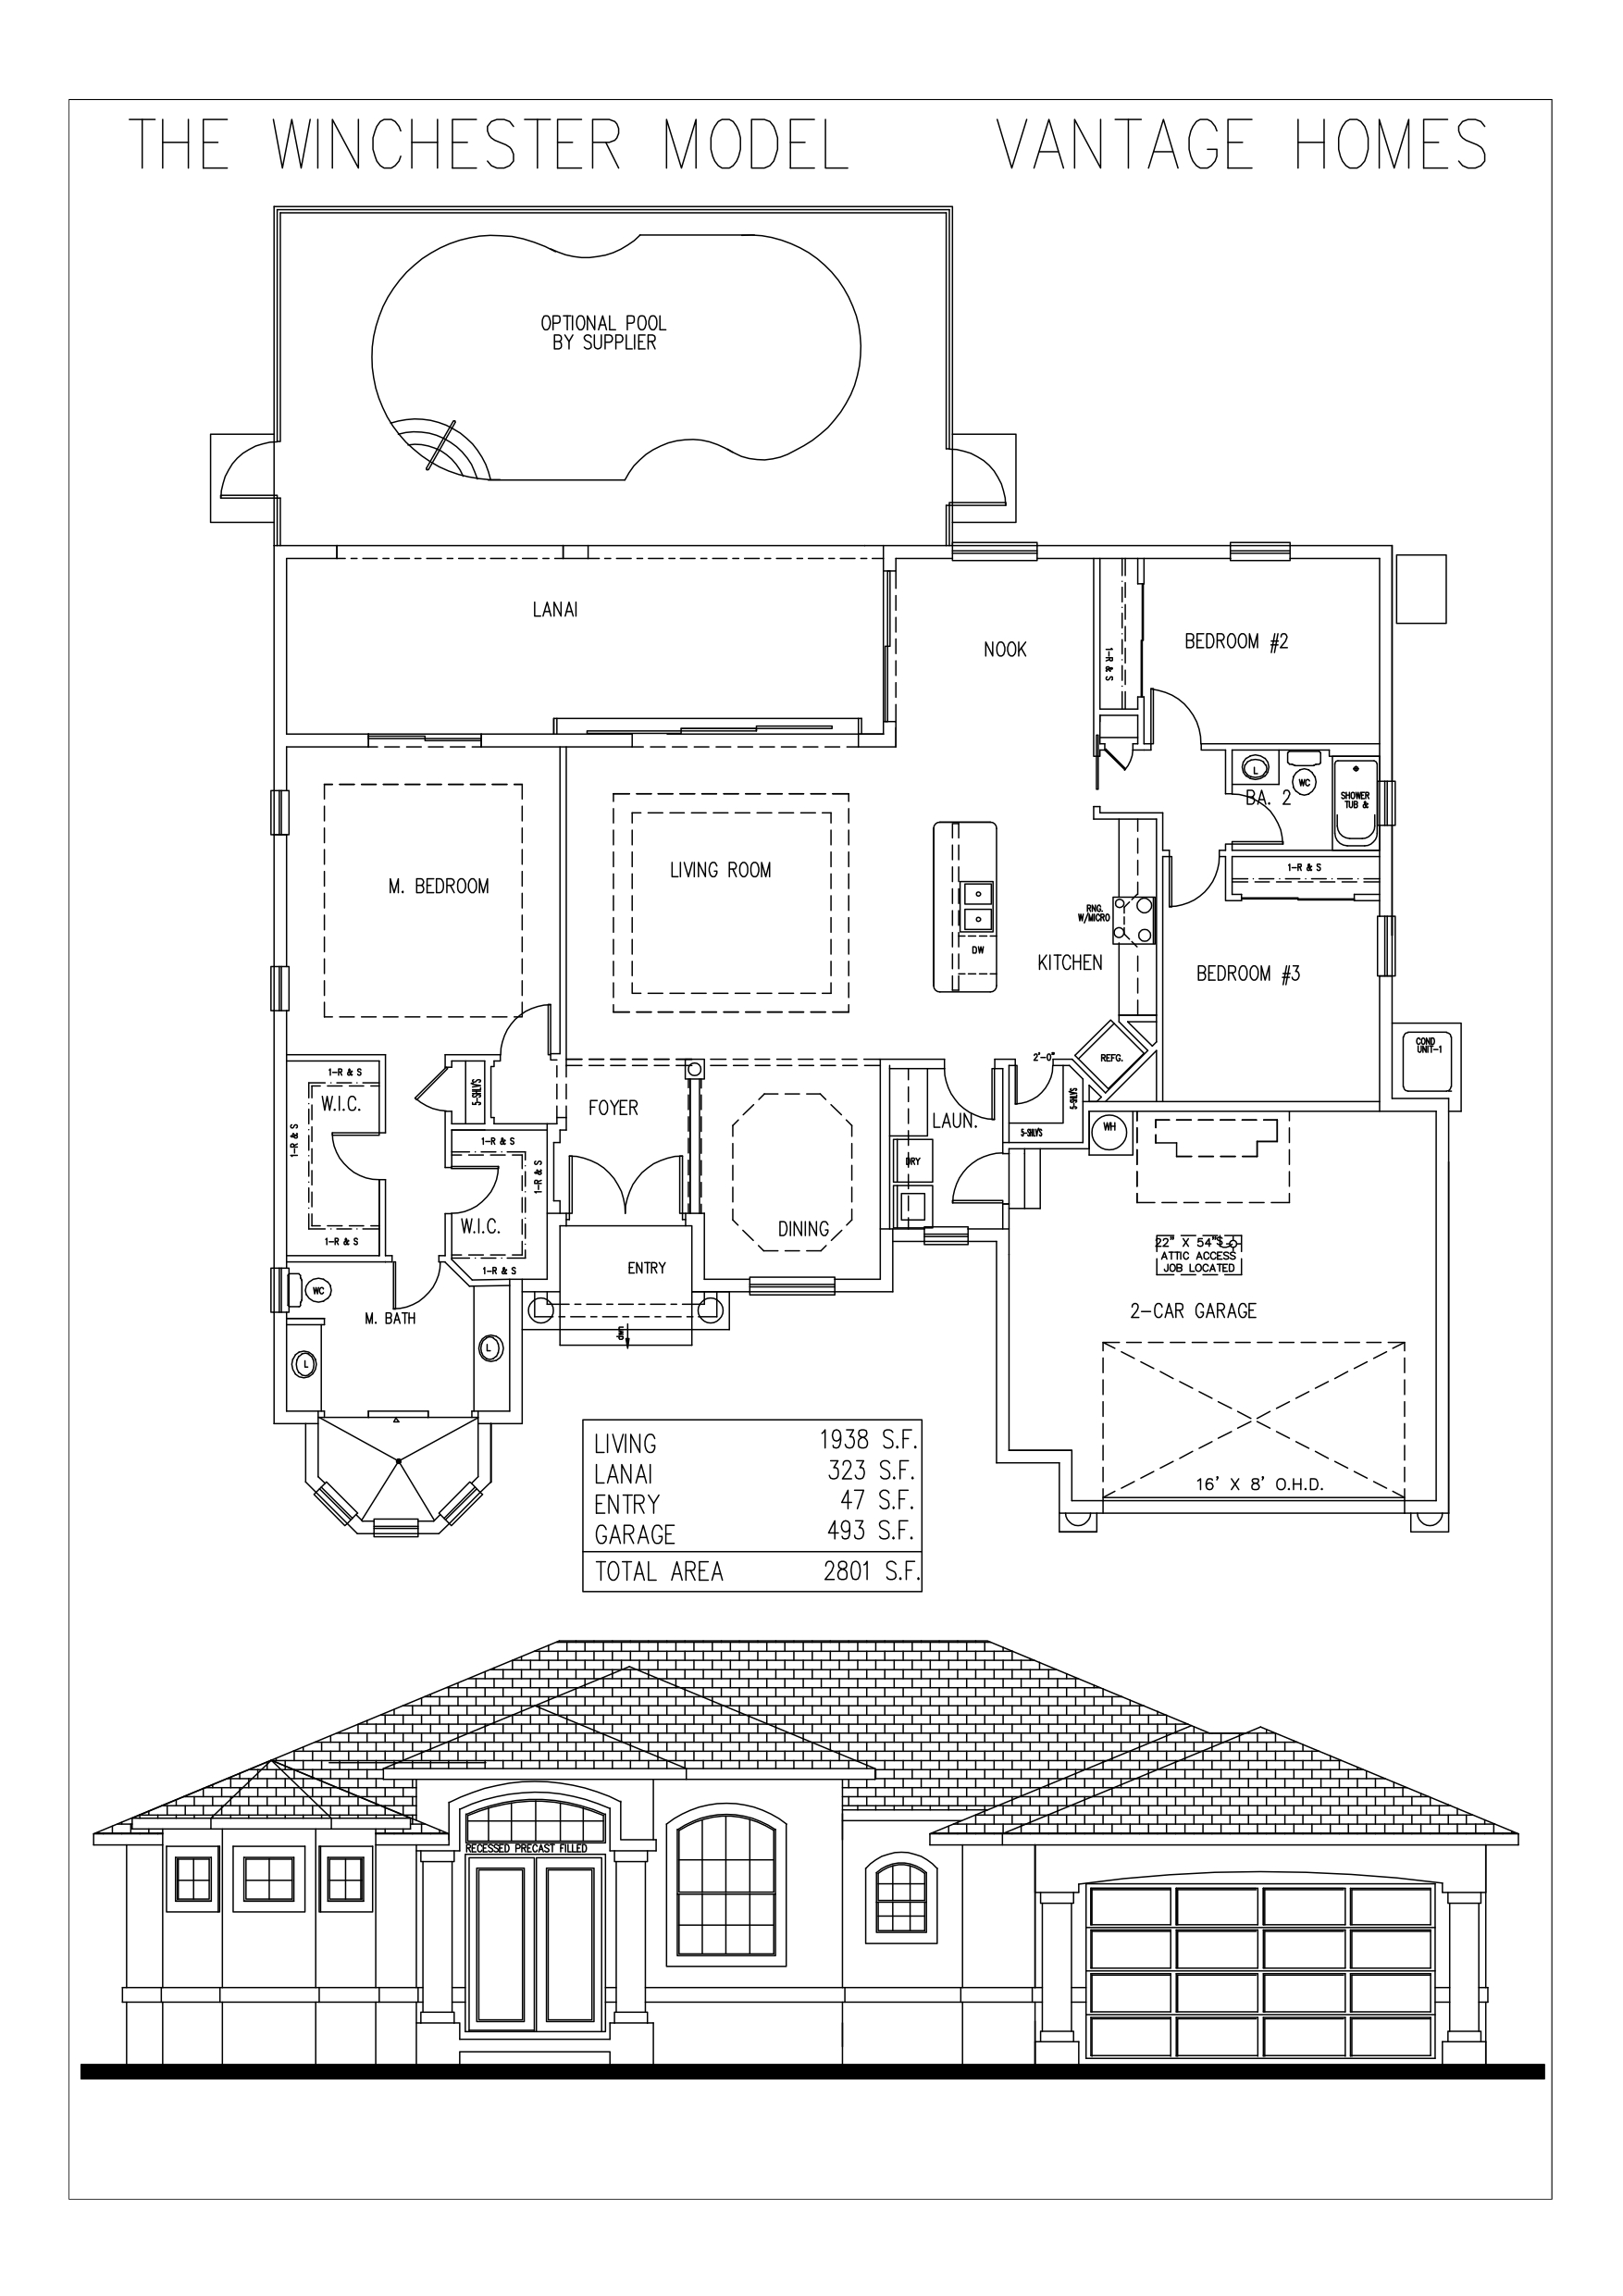 The Winchester Model floor plan